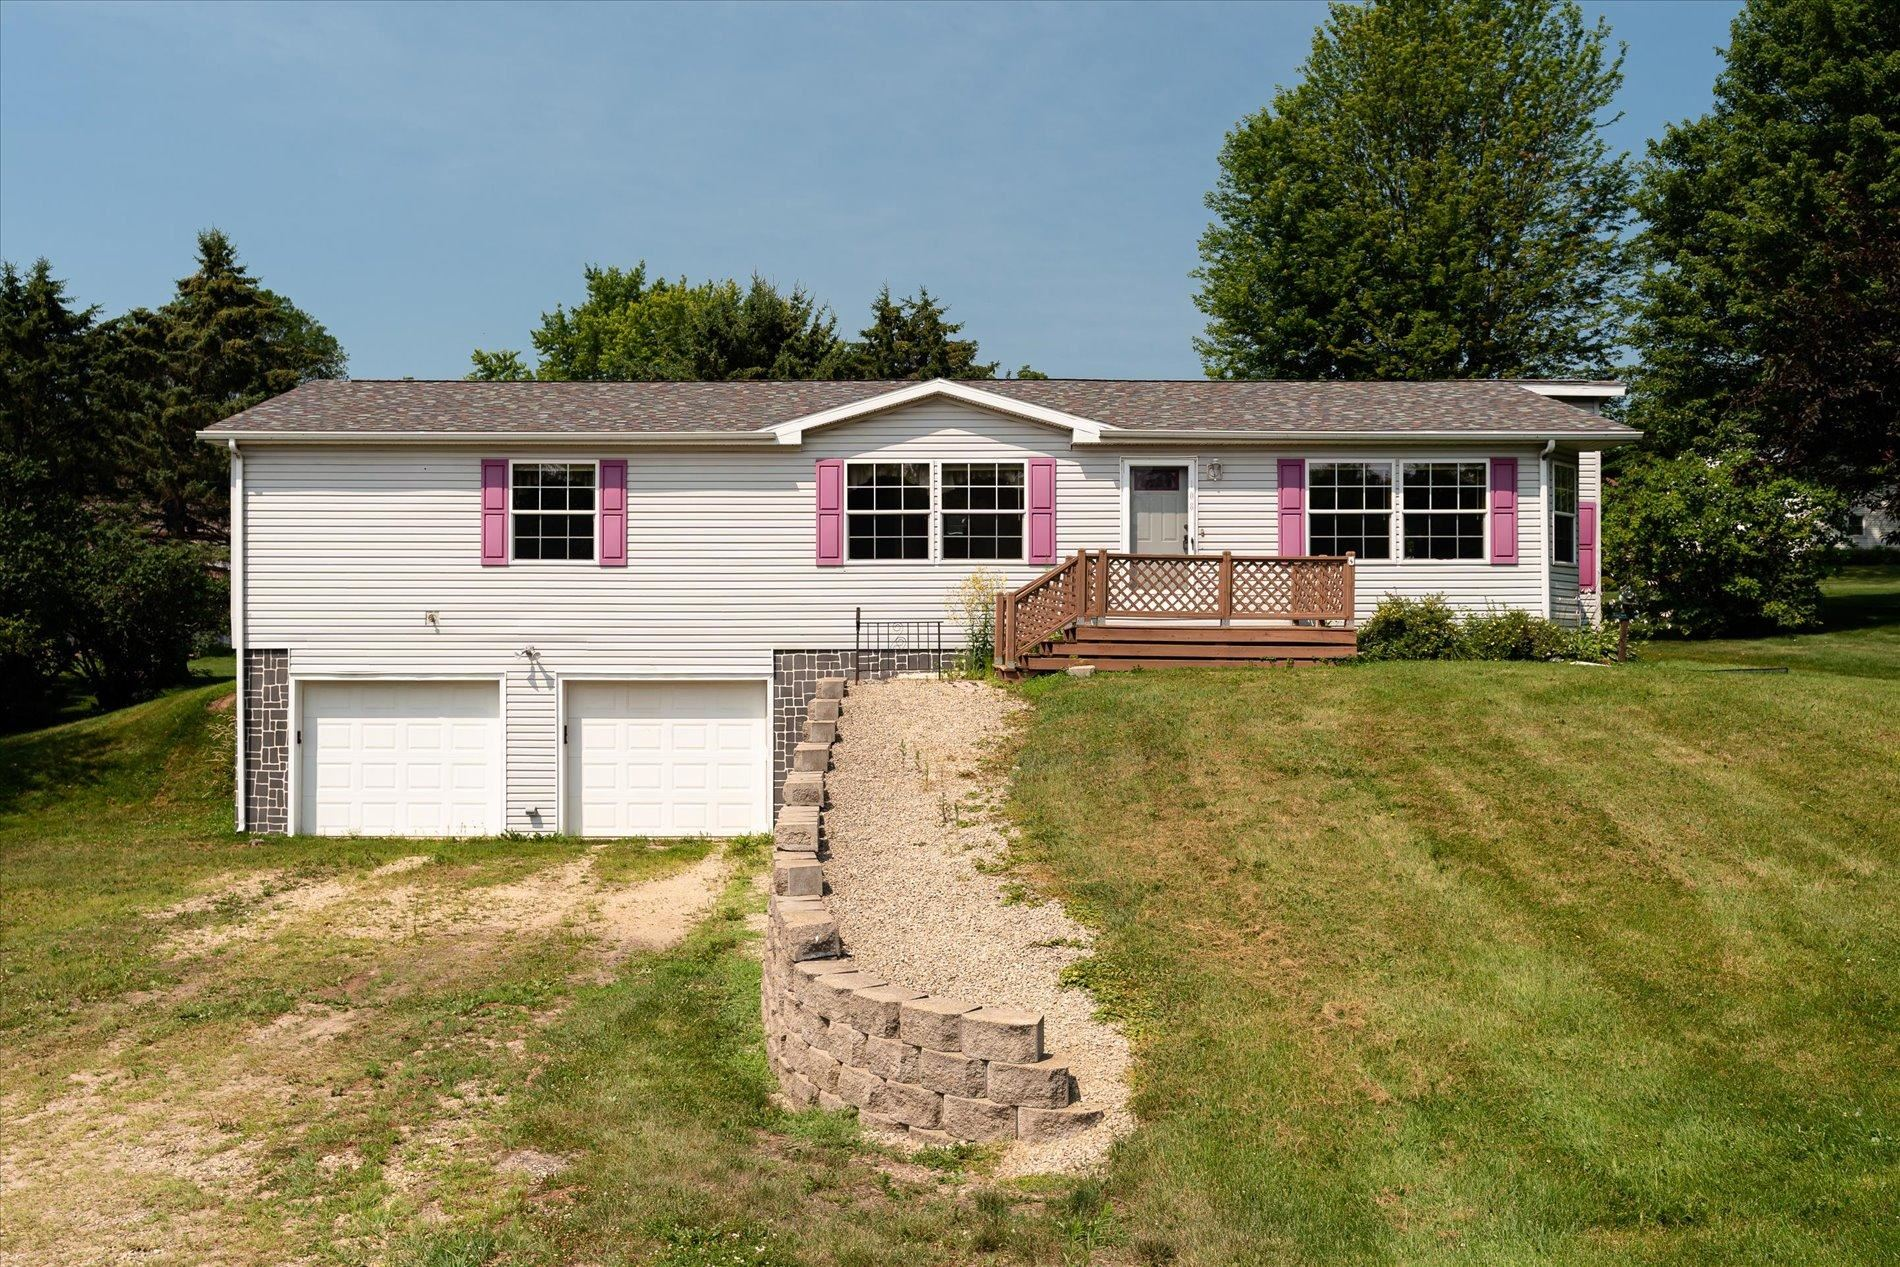 108 Hegge St, Westby, WI 54667 - MLS#: 1754891